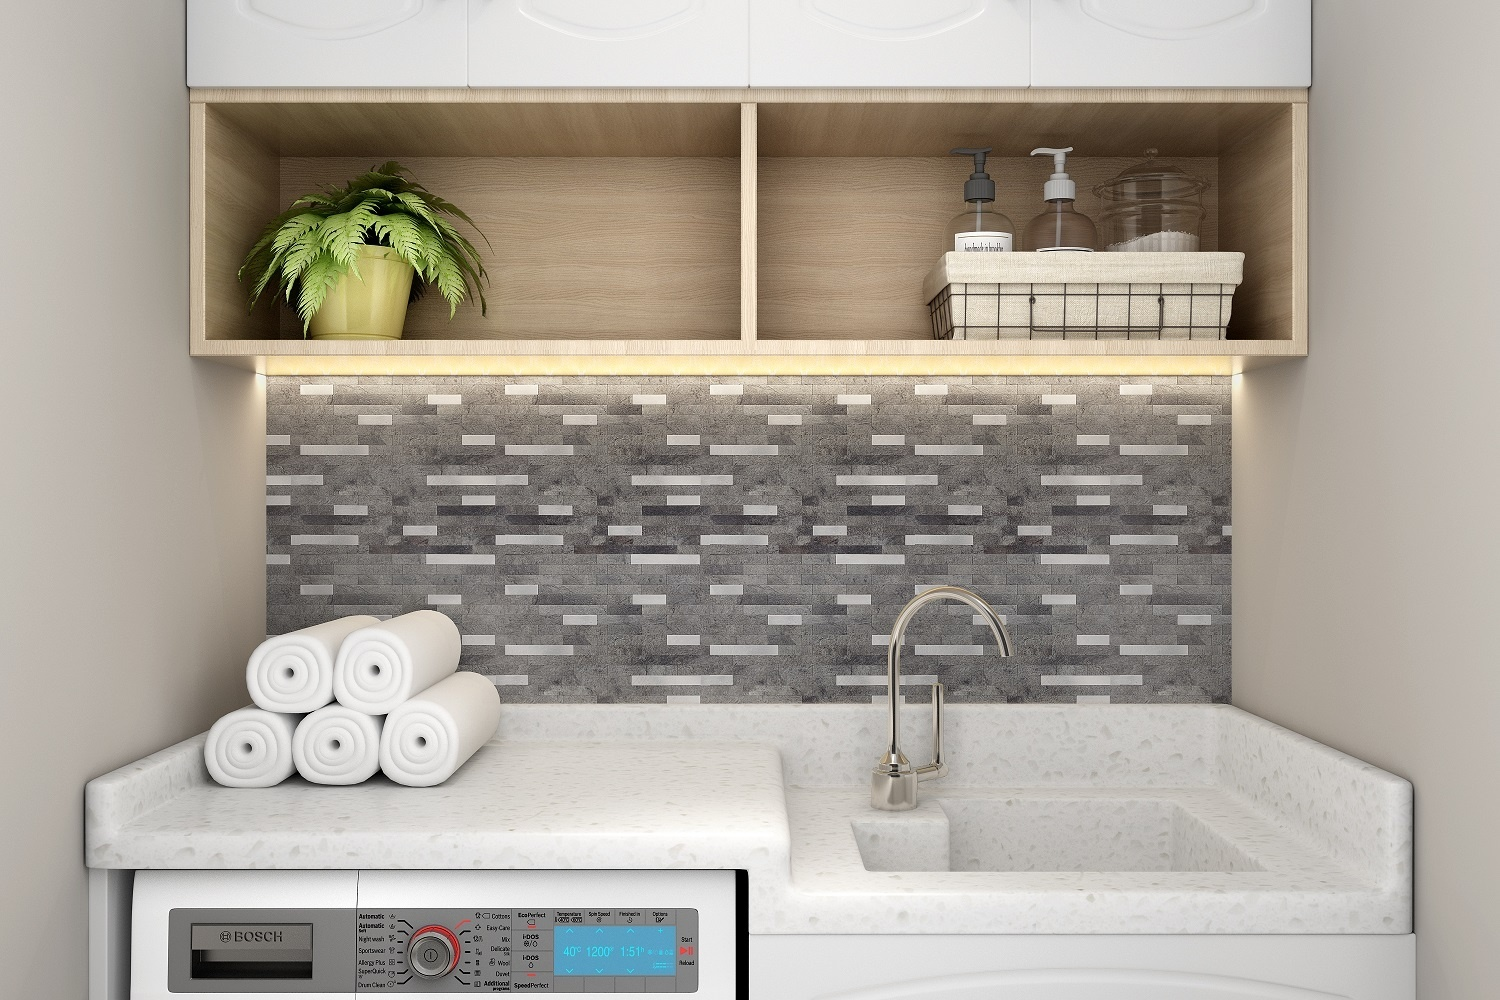 USA New Trend Peel and Stick Faux Stone No Grout Backsplash Tiles and backsplash for Kitchen